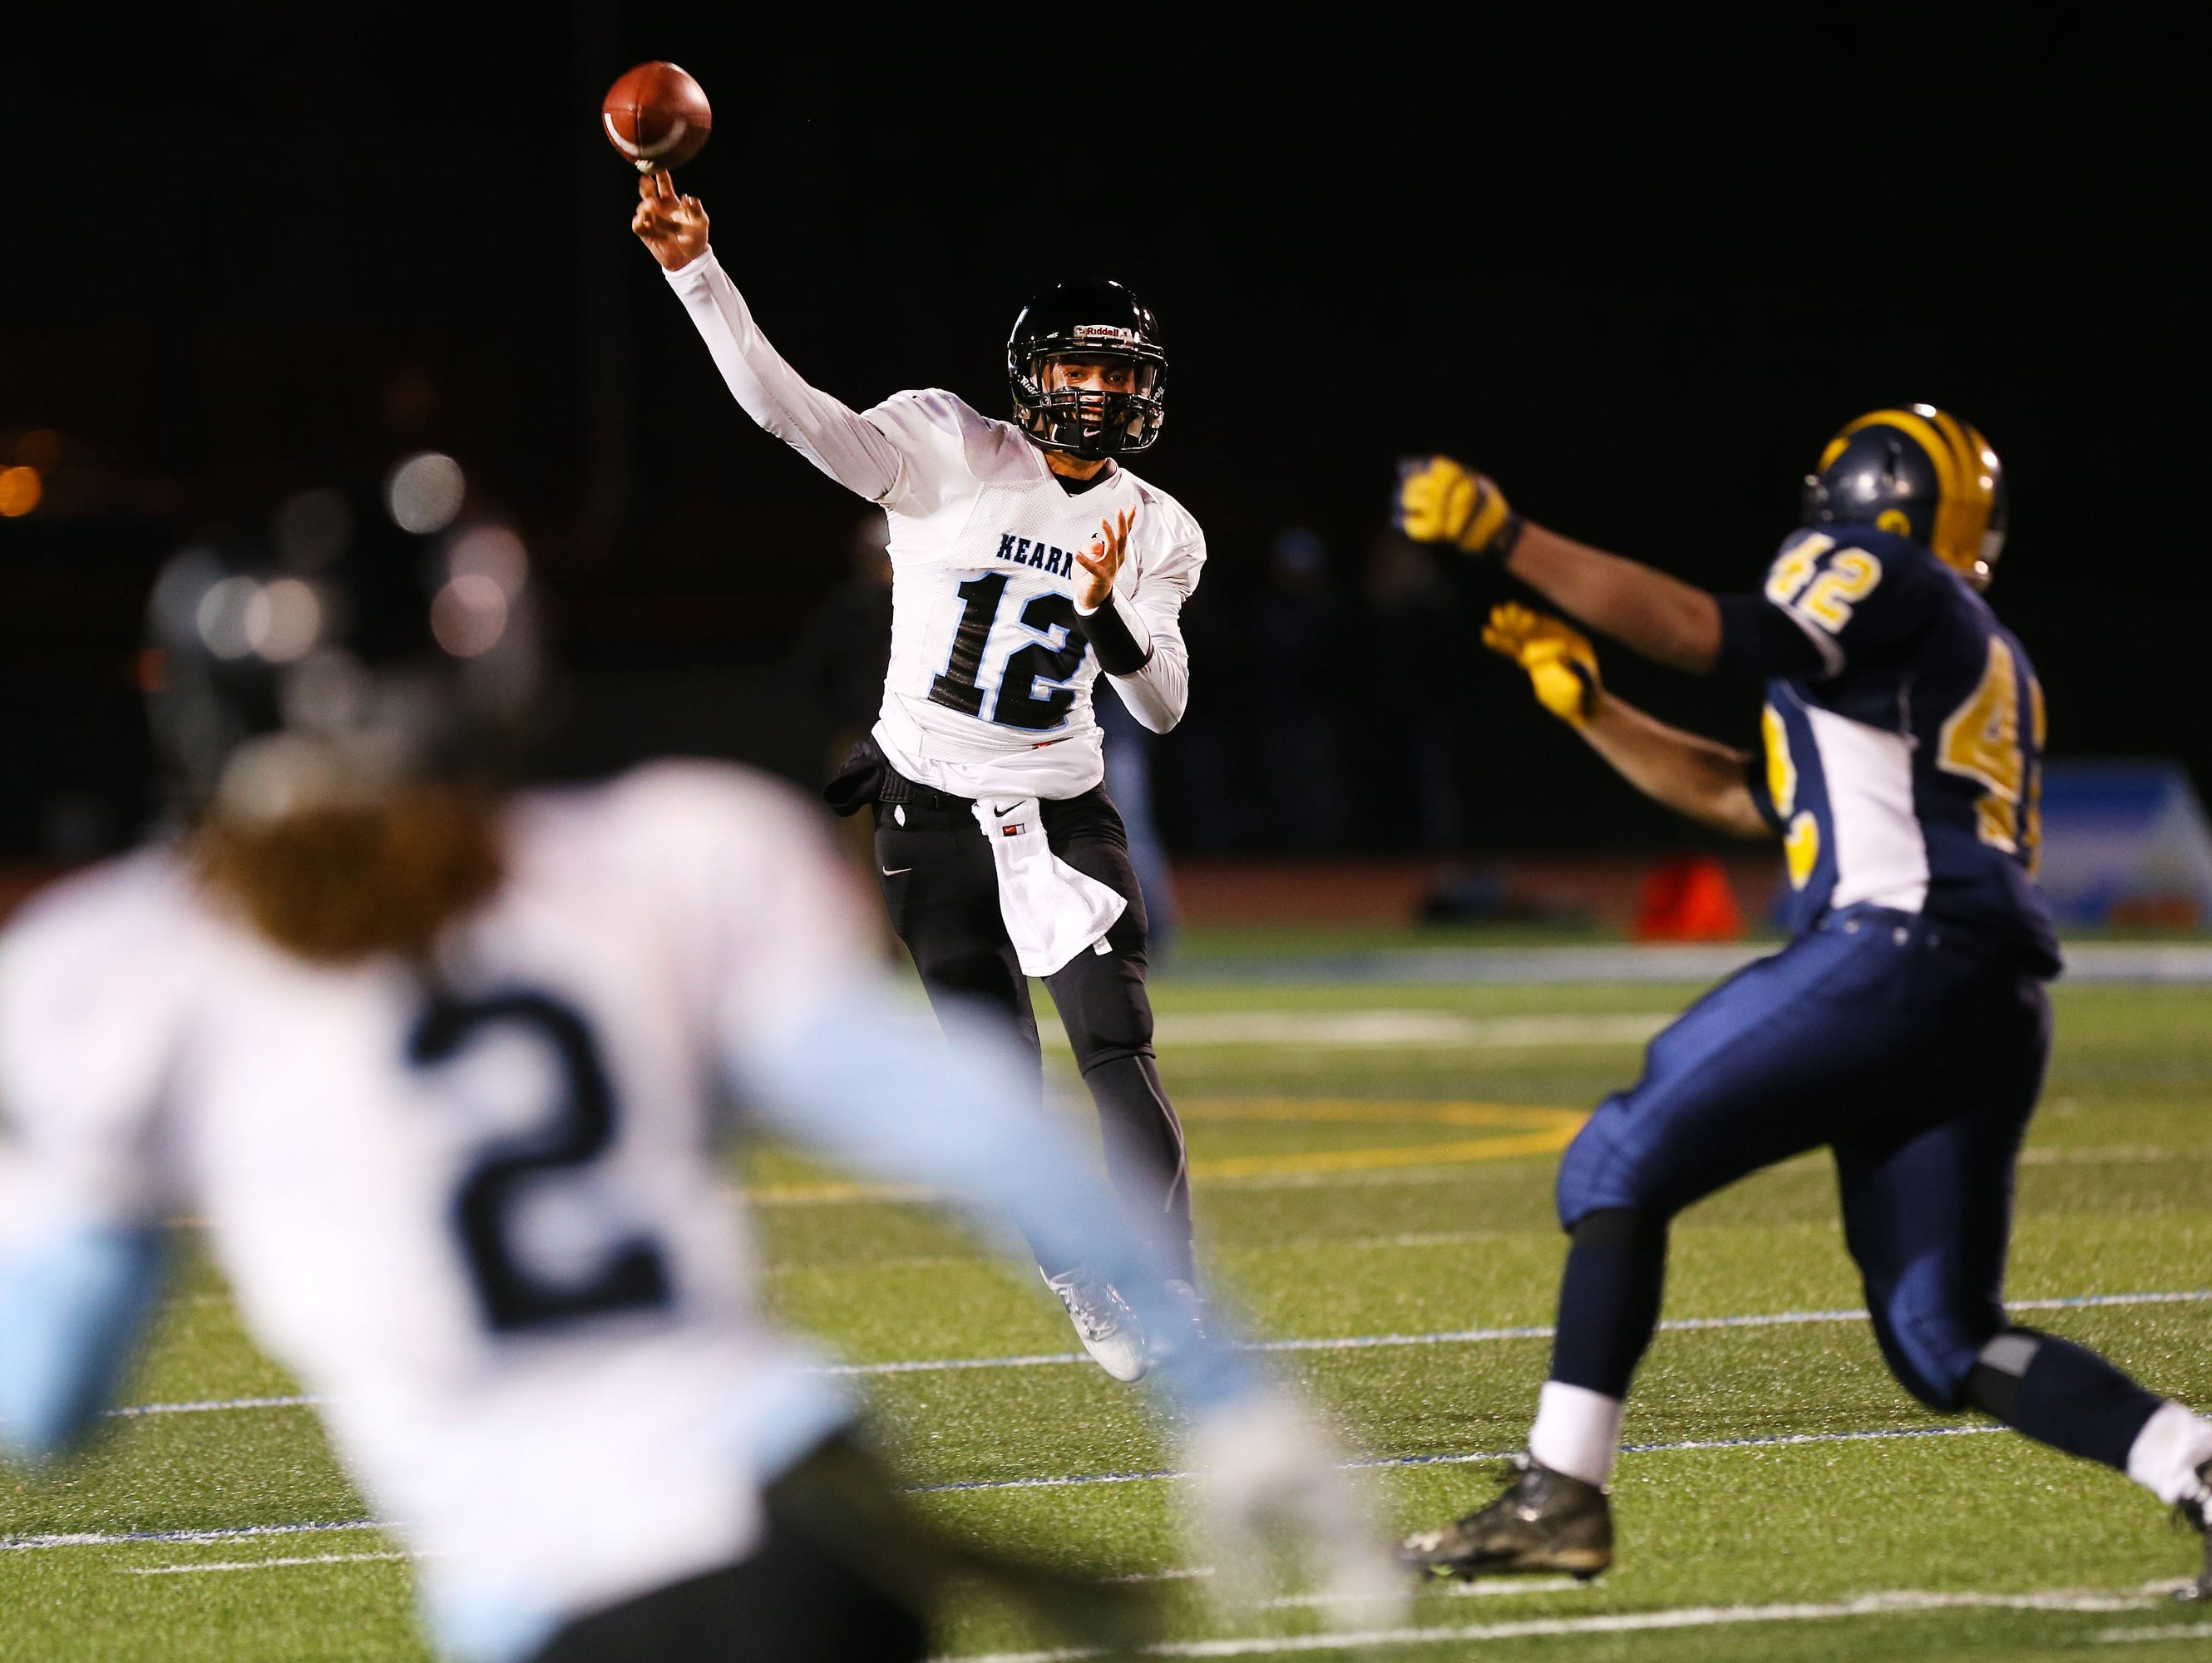 Bishop Kearney's Todd LaRocca passes to Justin Davis during the Class D state semifinal game at Cicero-North Syracuse High School on Friday, November 20, 2015.